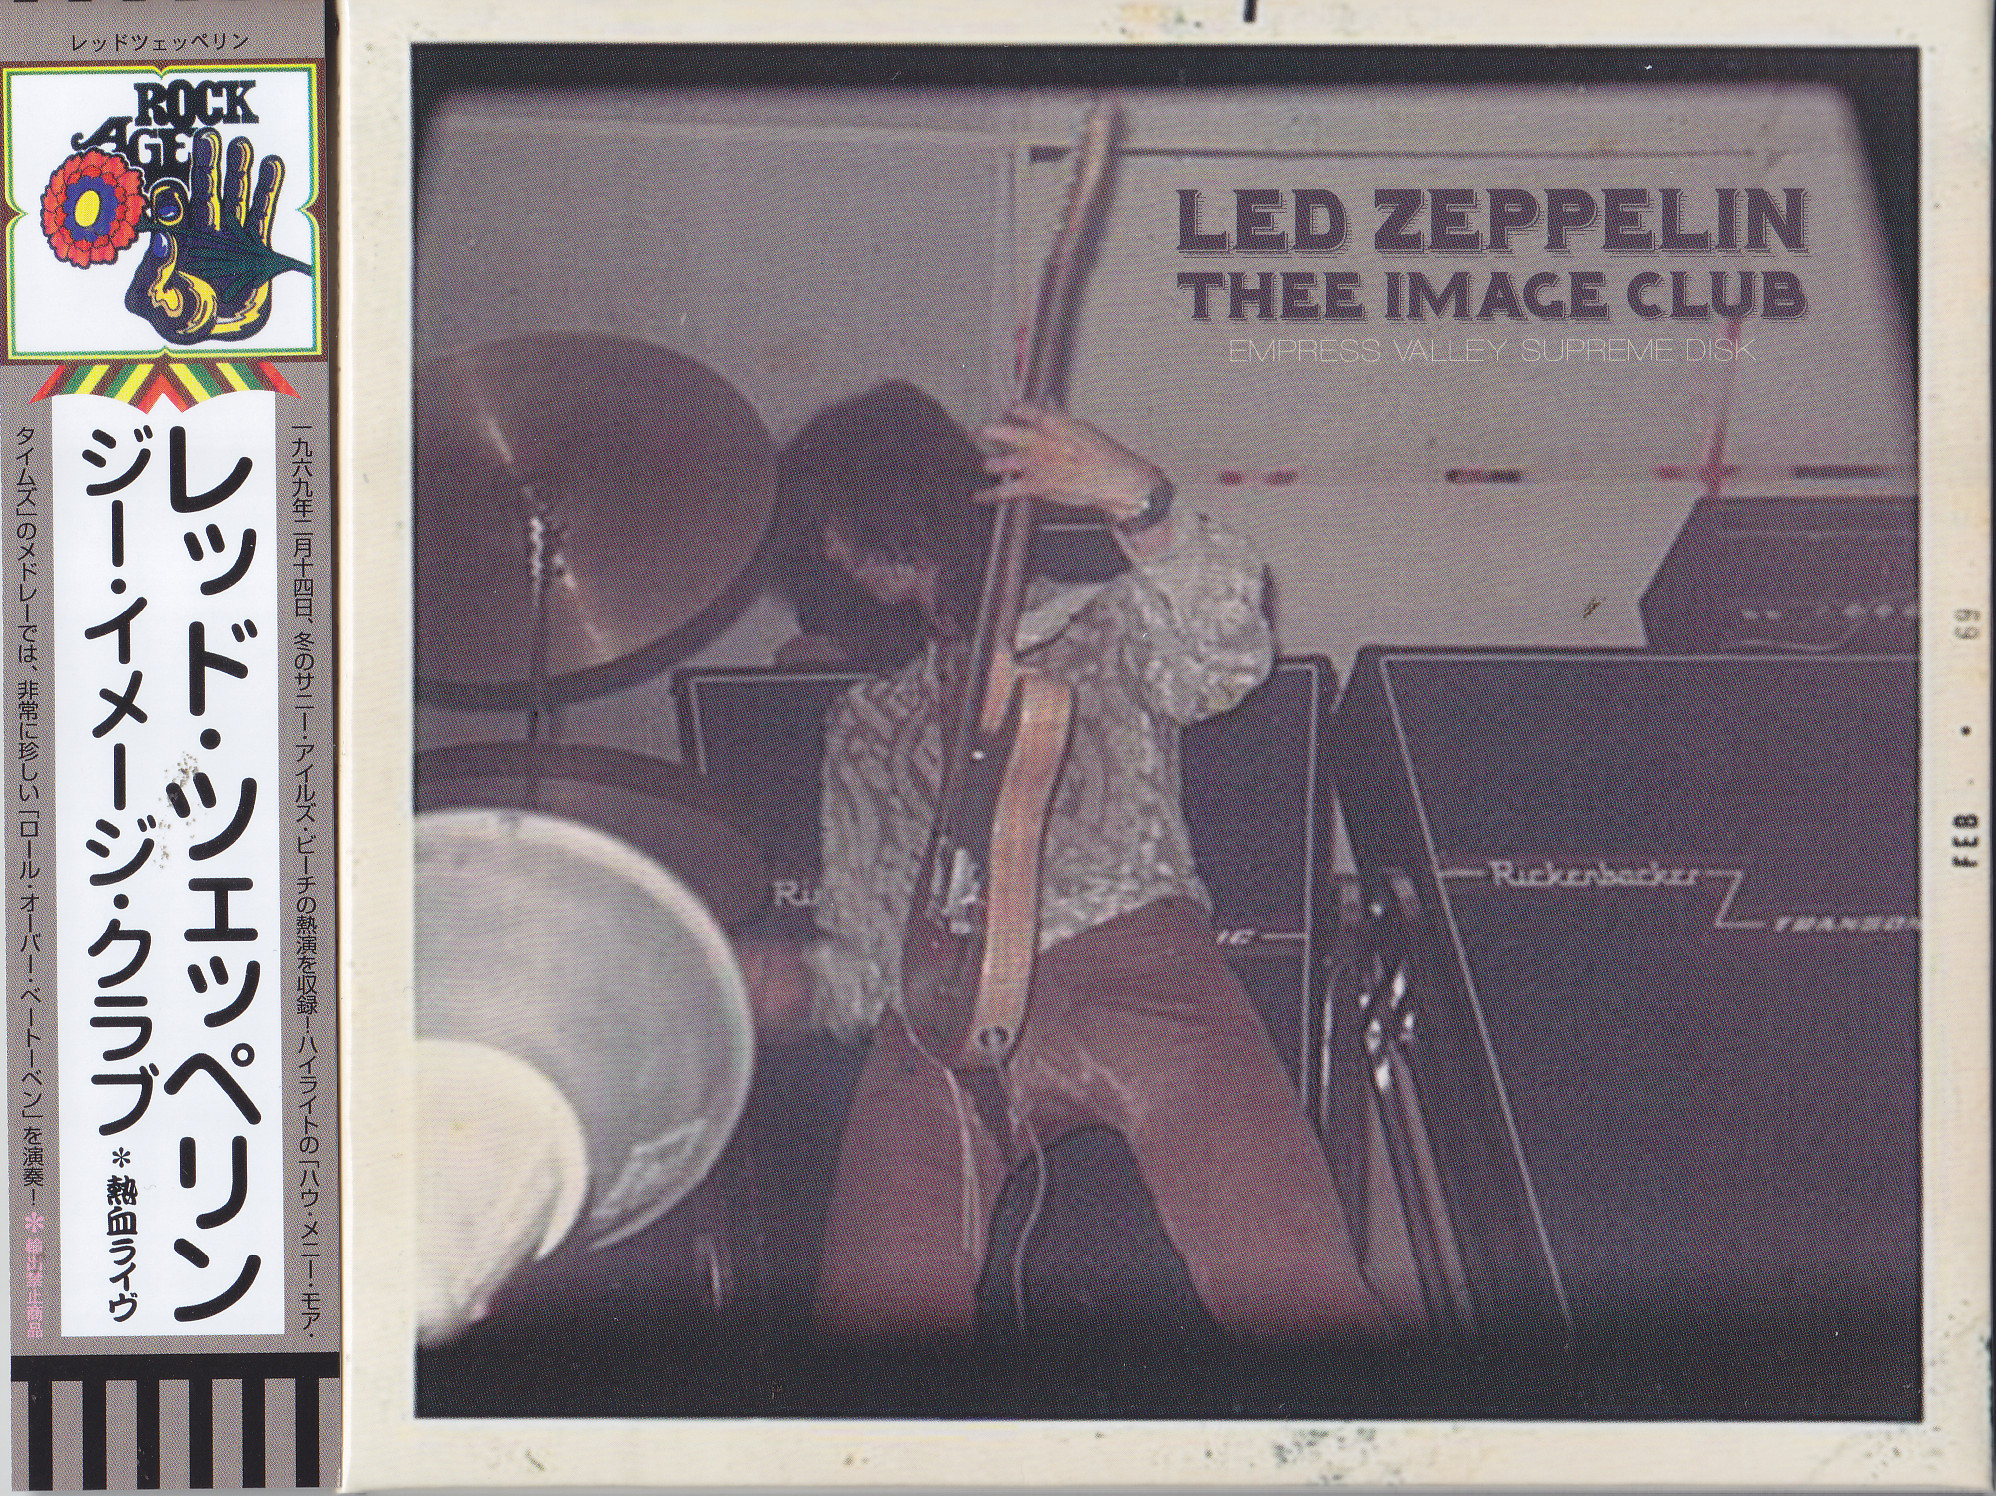 Led Zeppelin- Thee Image Club (2CD Digipak With OBI Strip) Empress Valley  Supreme Disk  EVSD-406/407